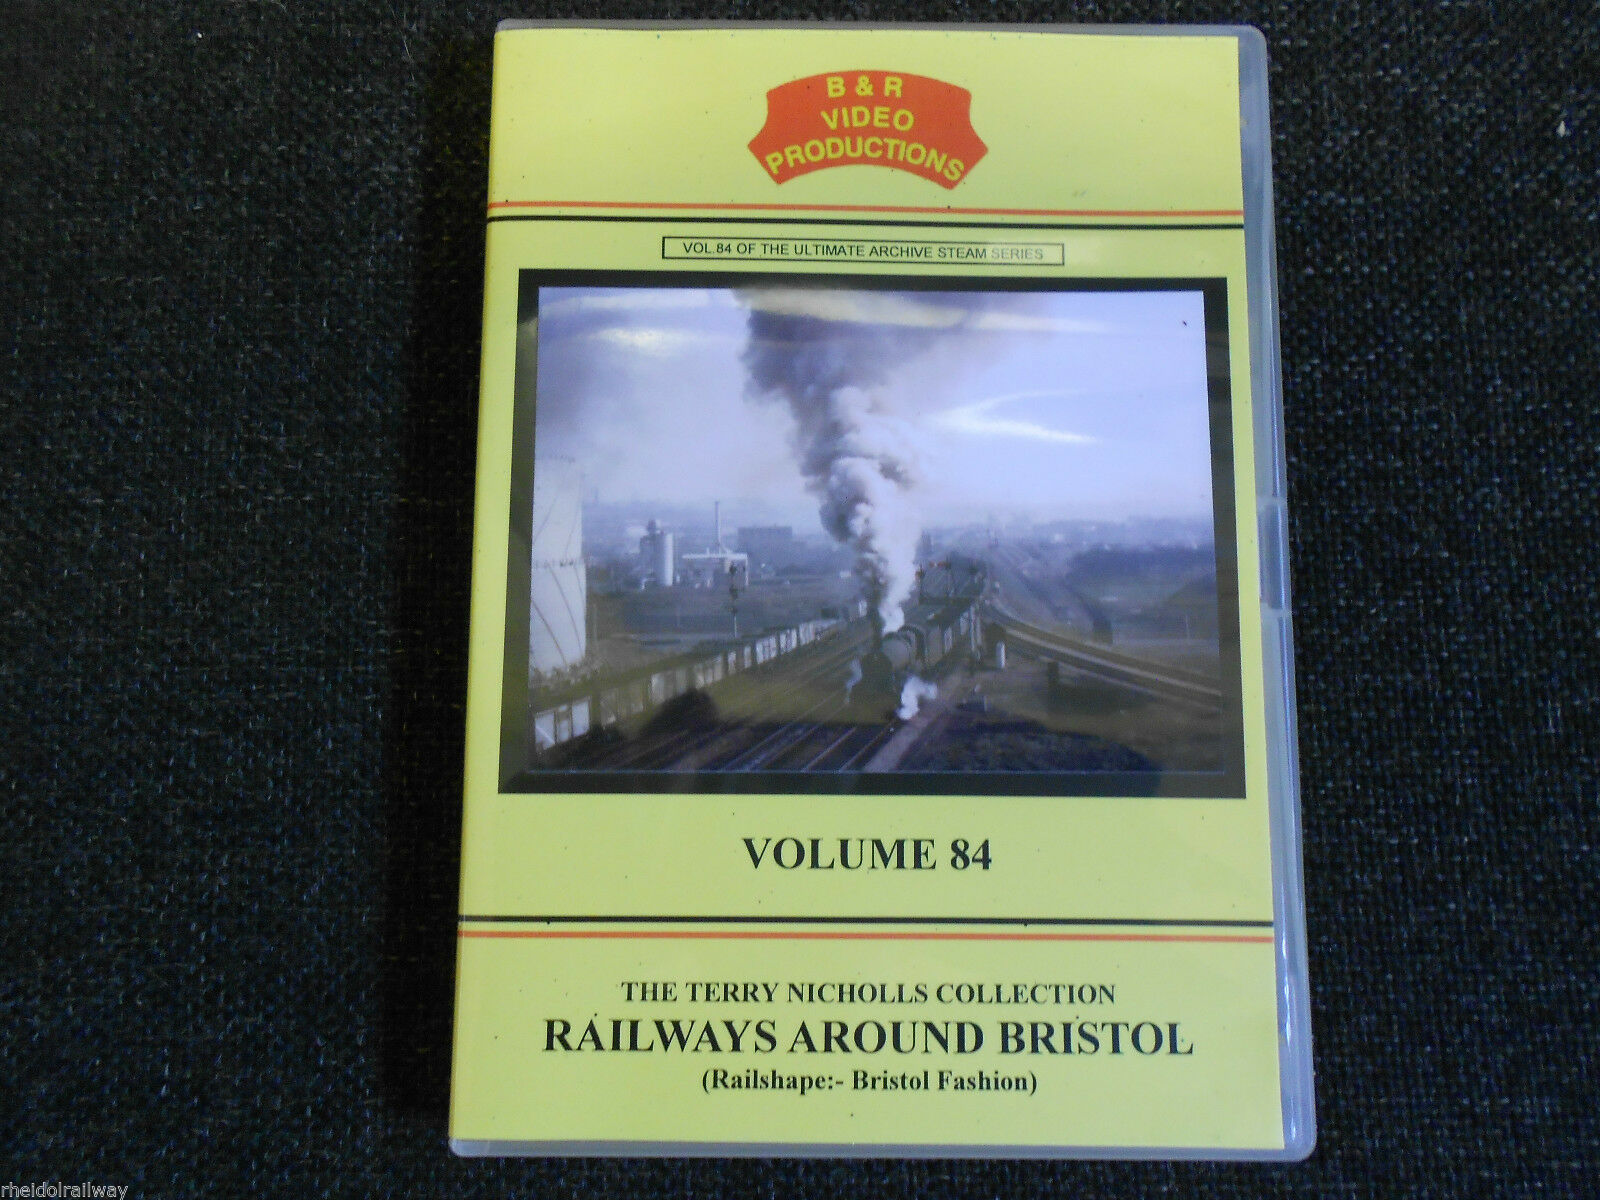 Barrow Road, Pilning, Clifton Bridge, Railways Around Bristol B&R Vol 84 DVD - The Vale of Rheidol Railway